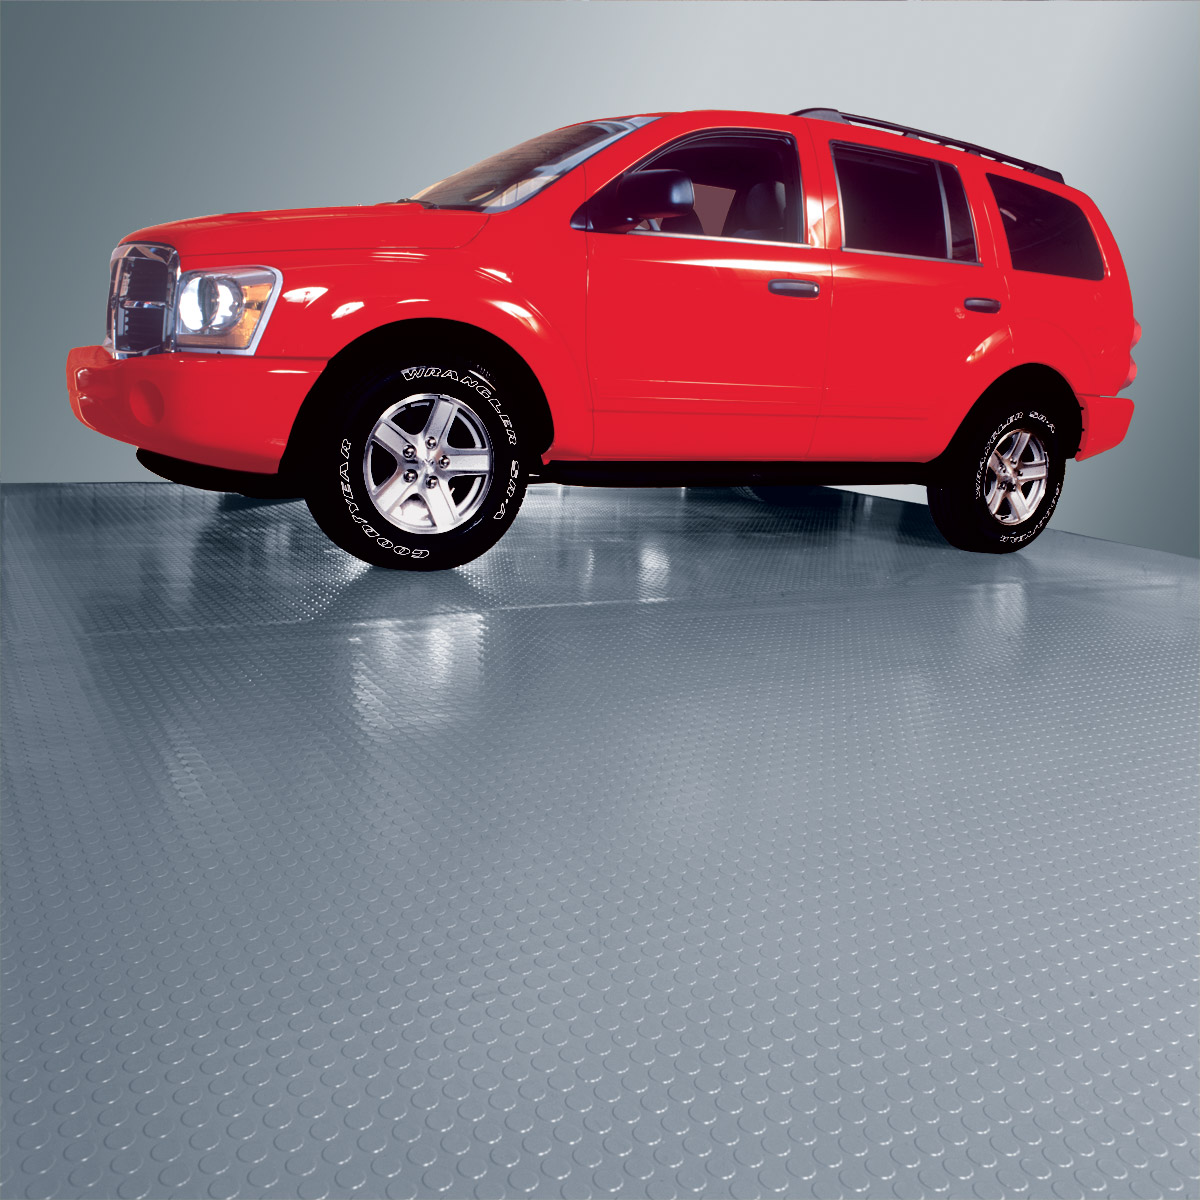 Garage Floor Mats For Your Cars: Roll Out Garage Flooring